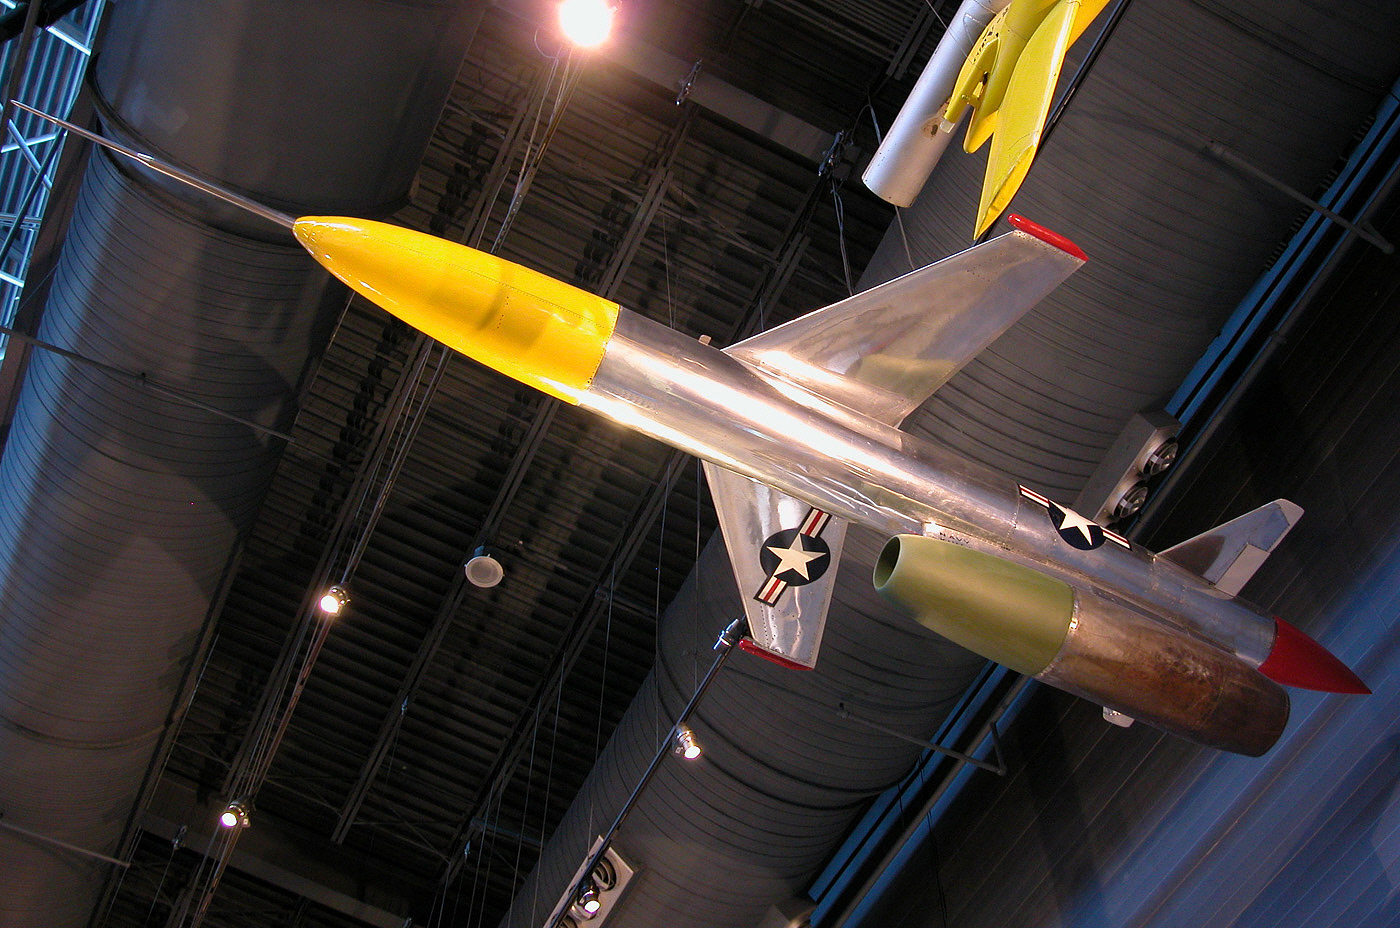 images for Missile, Air-to-Air, Drone and Test, Gorgon IV, also Designated KUM-1 or PVT-N-2